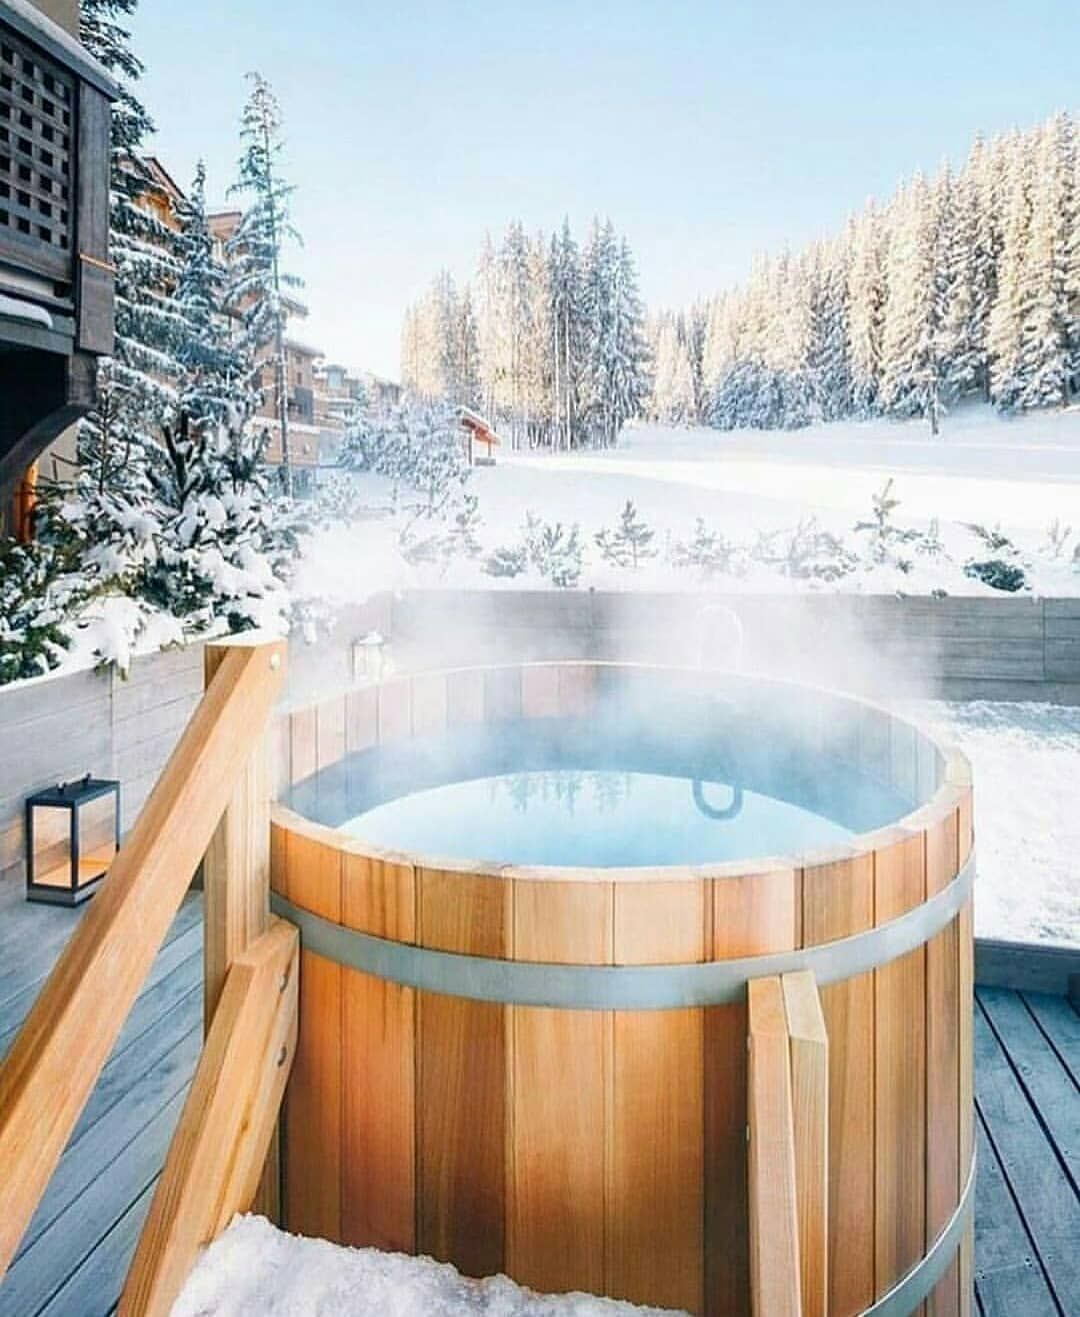 Living Hotels On Instagram Hot Pool In The Snow Rhone Alpes